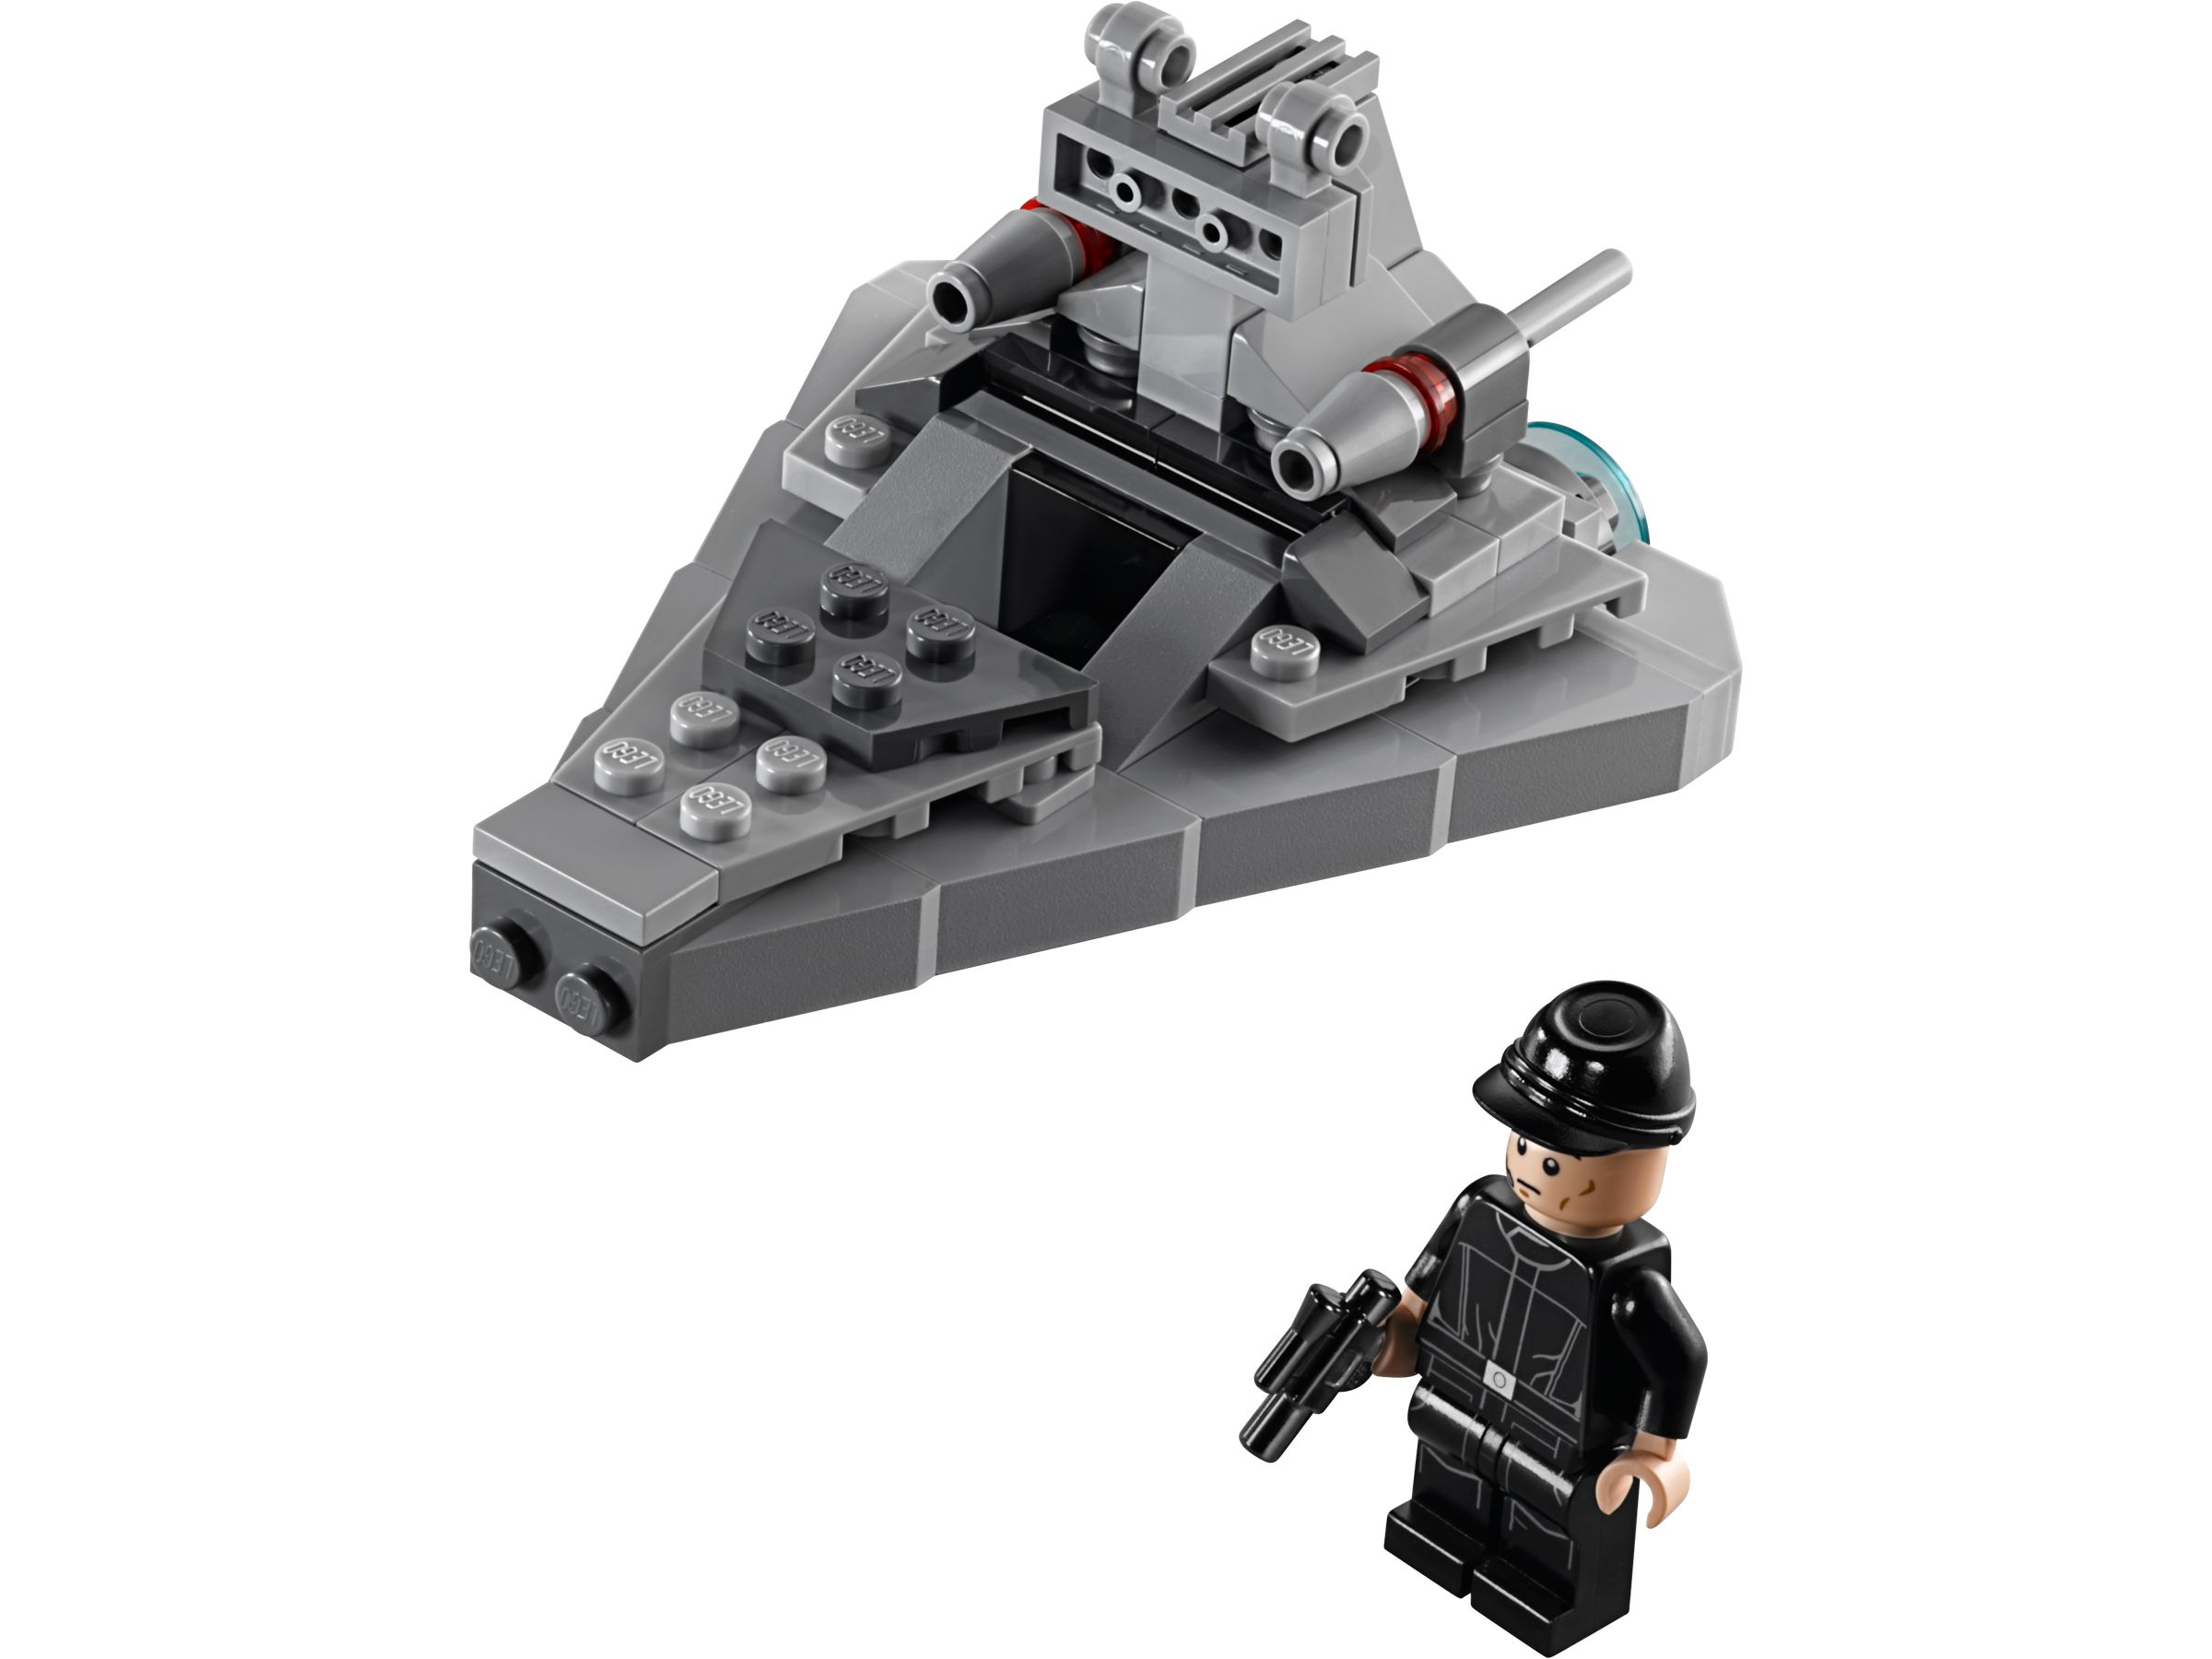 LEGO Star Wars 75033 Star Destroyer™ LEGO_75033.jpg